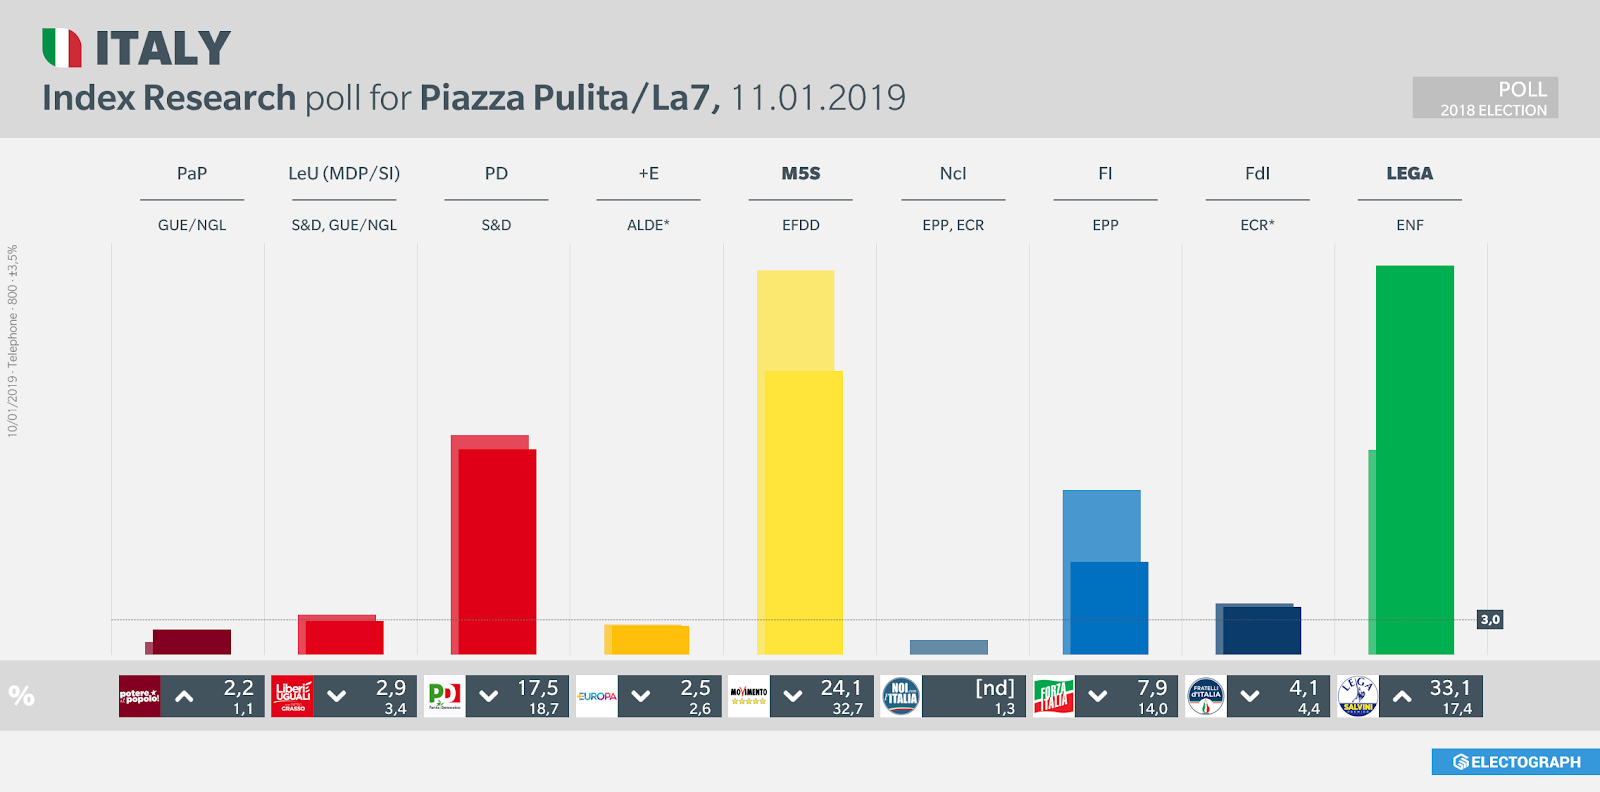 ITALY: Index Research poll chart for Piazza Pulita/La7, 11 January 2019